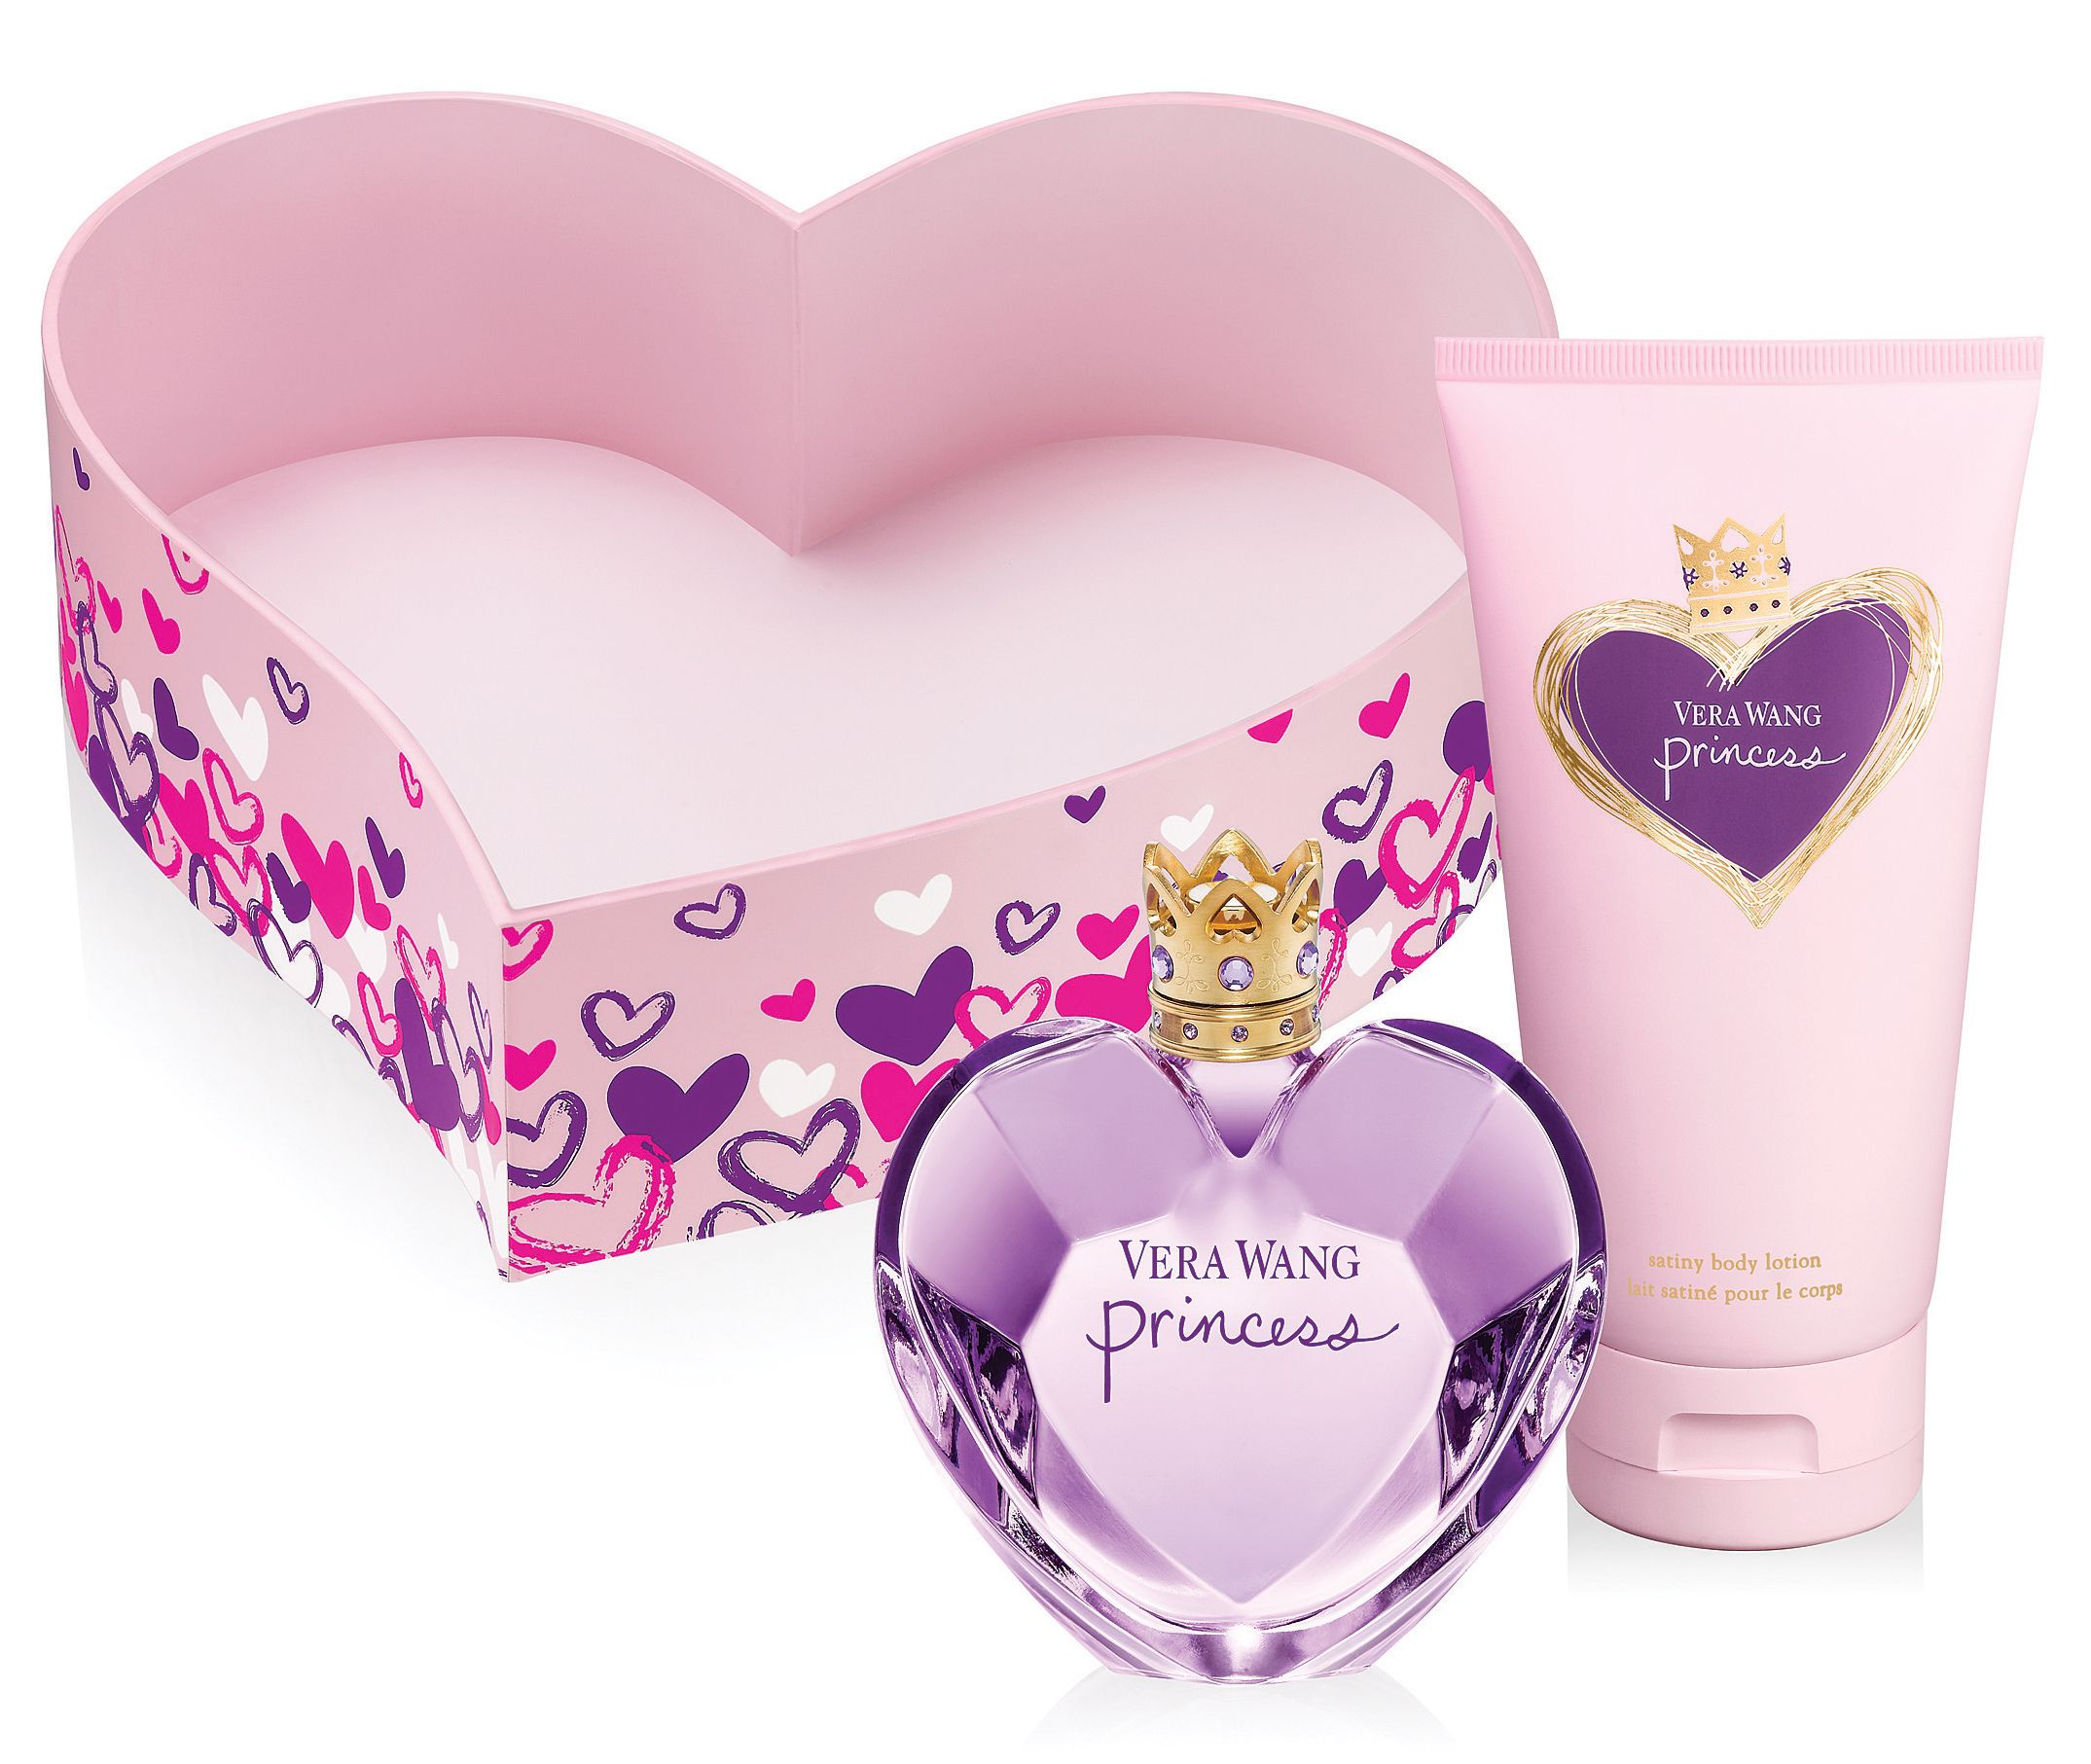 100ml Vera Wang Princess gift set